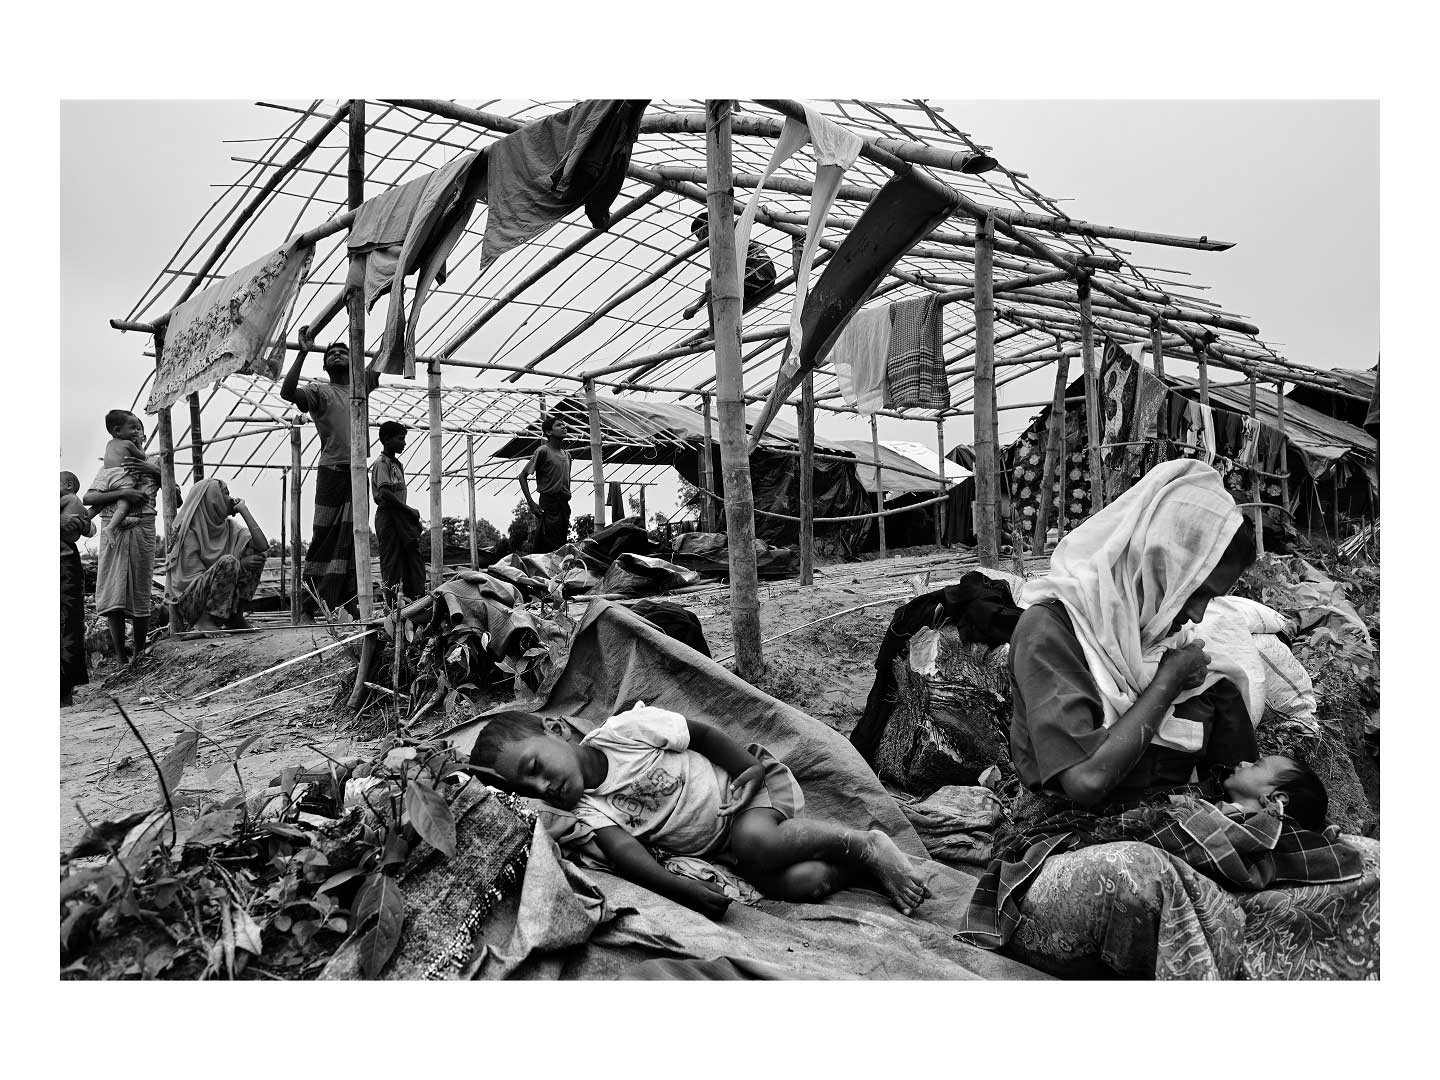 A group of Rohingya women wait for food assistance in the town of Shamlapur. Photo by Greg Constantine.